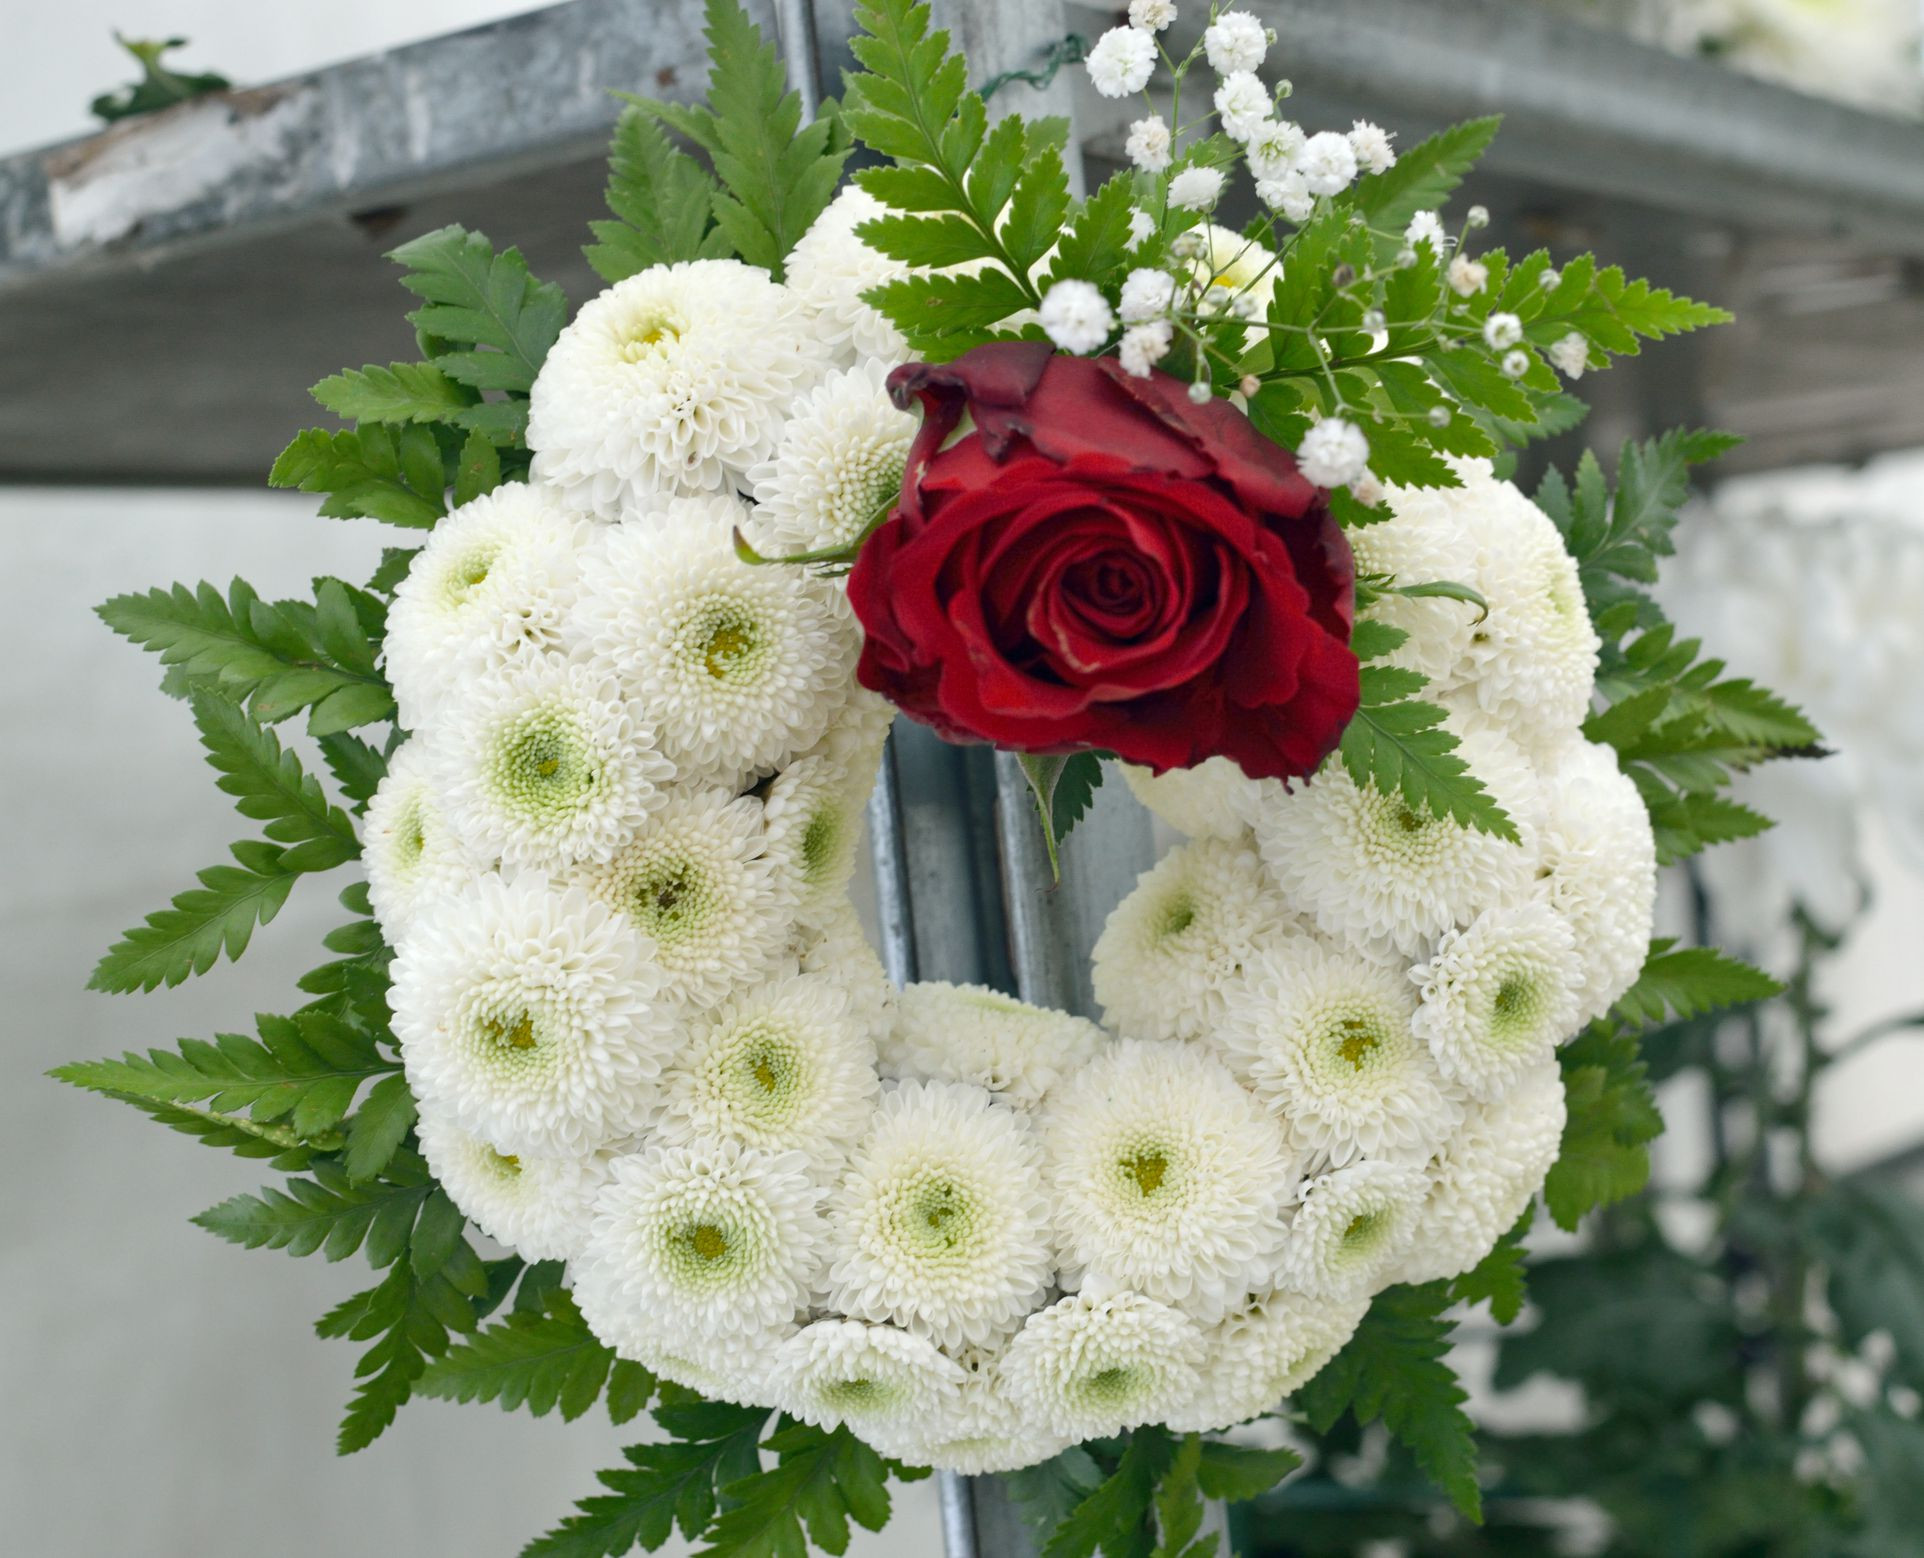 just flowers no vase of proper etiquette for sending funeral flowers in funeralwreath gettyimages 591655301 5a3edccc5b6e240037ffc773